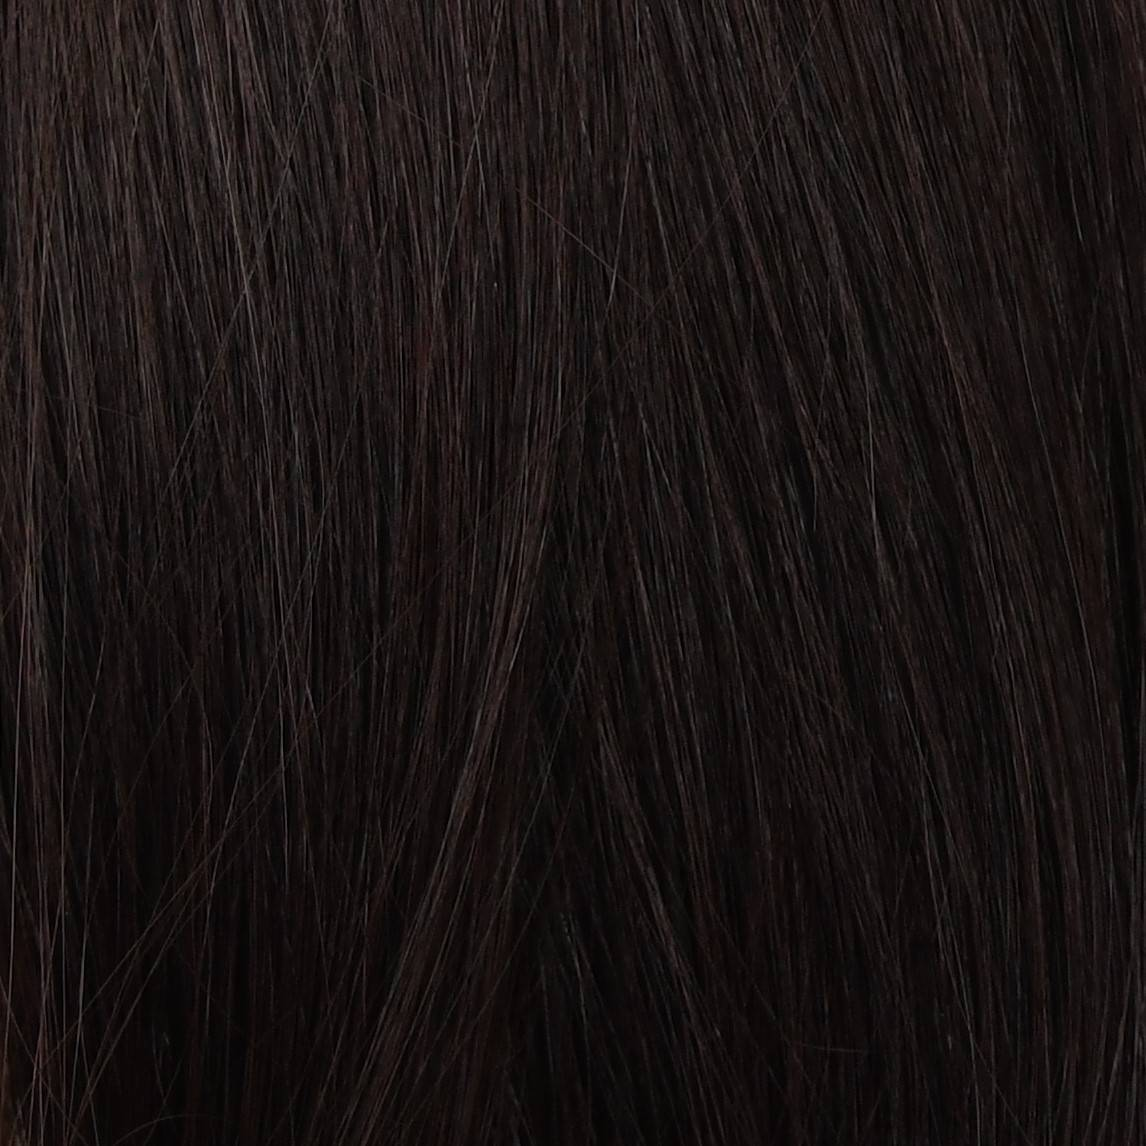 brunette hair extensions color sample in hair color chart